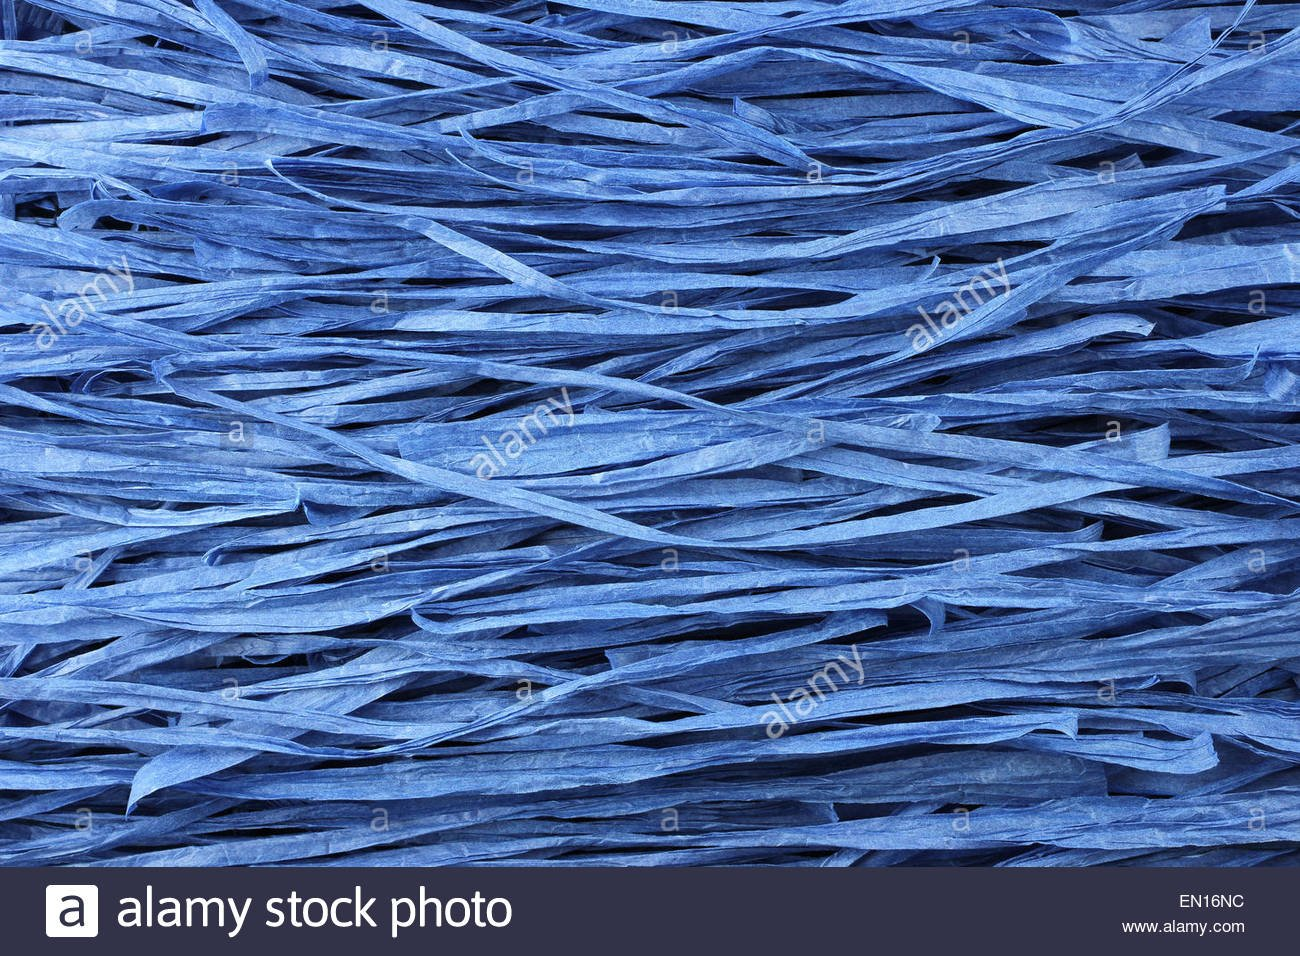 Background   blue paper raffia strips situated in parallel lines 1300x956